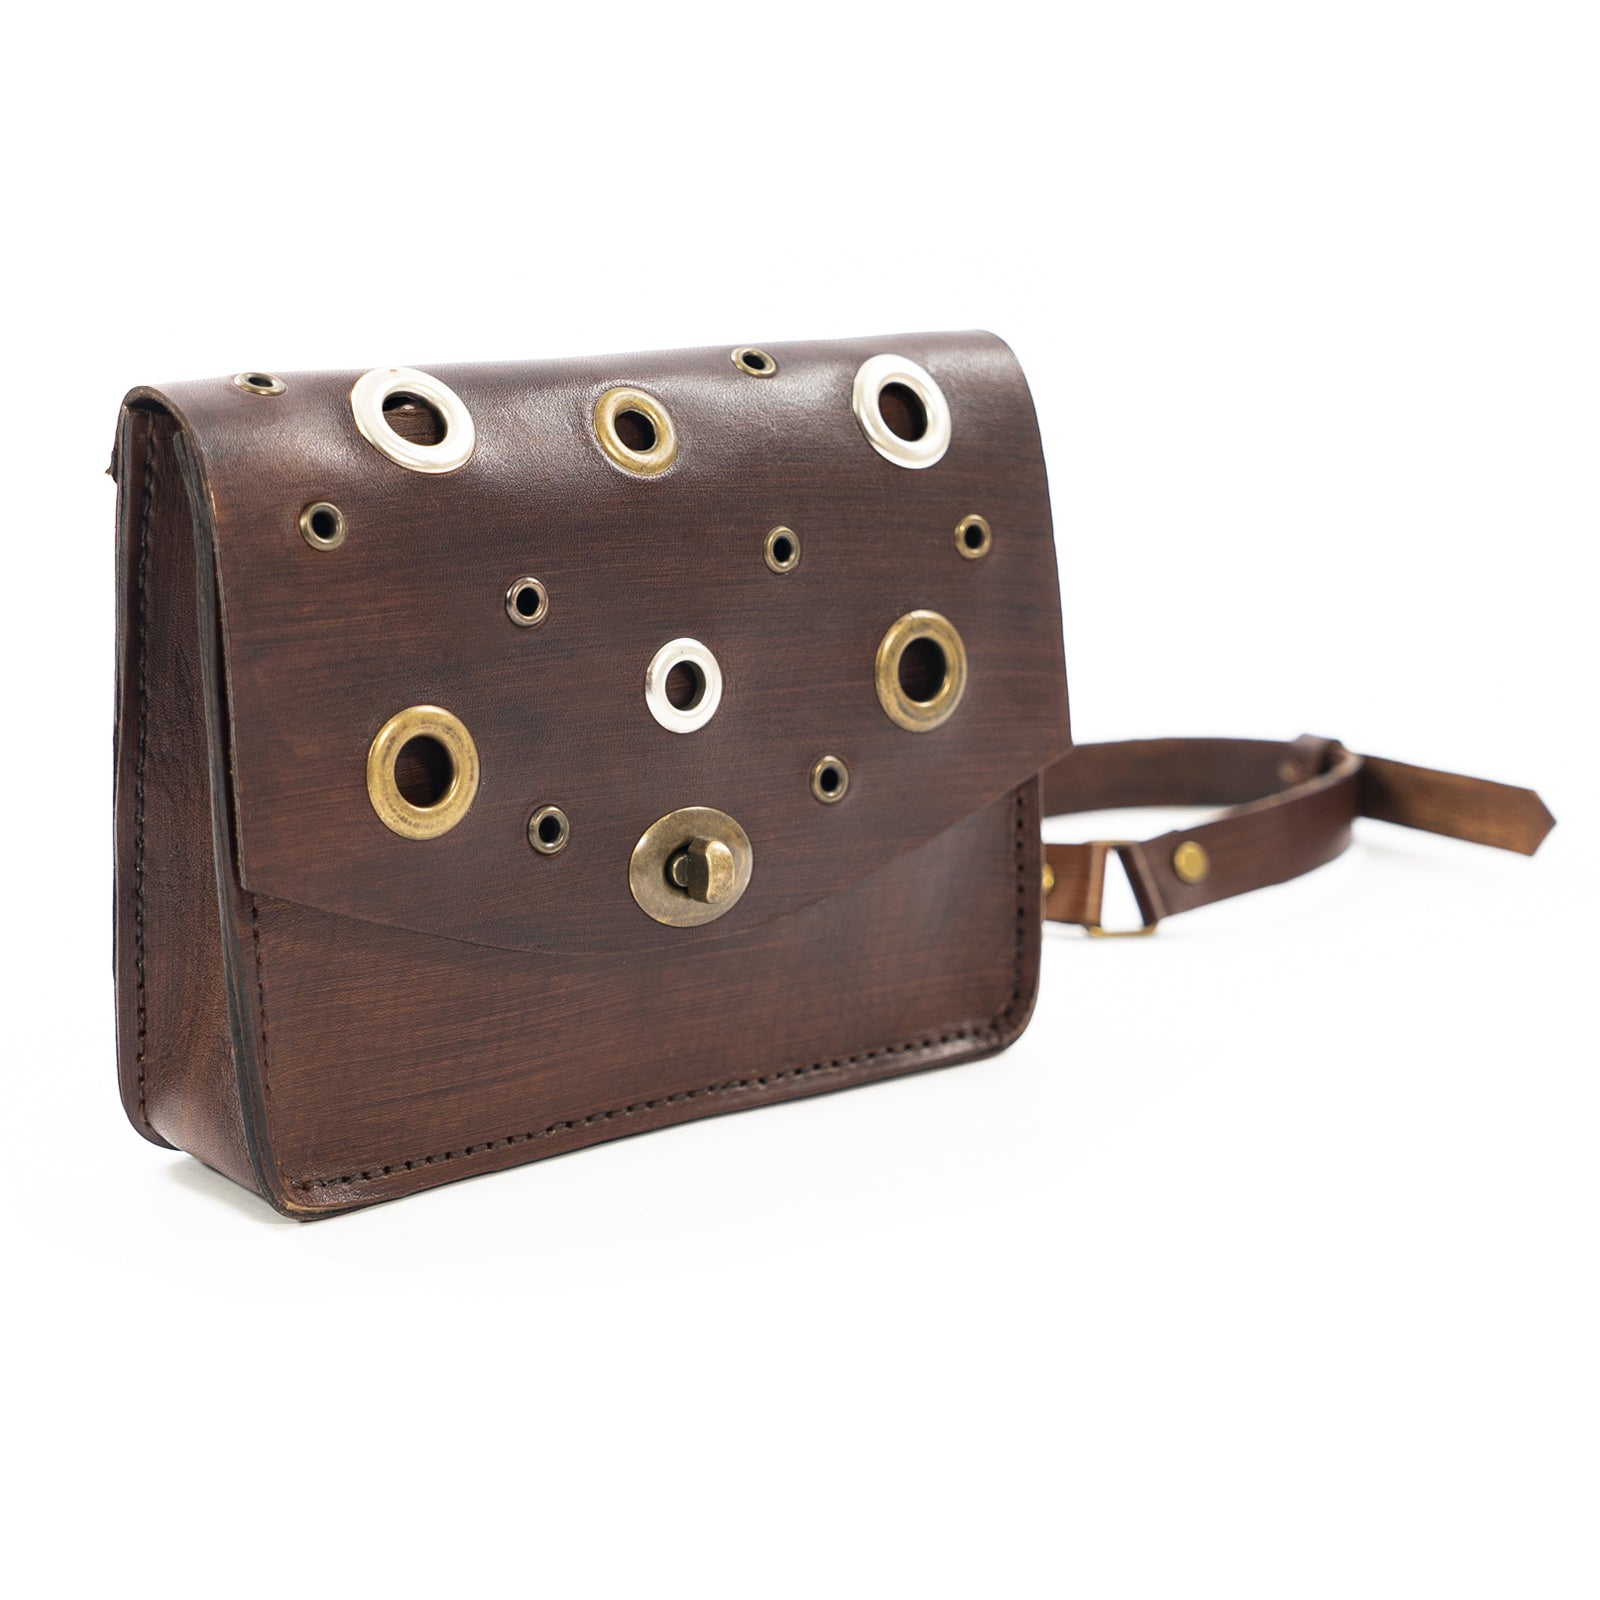 Derifix Moza Women's Handmade Leather Bag